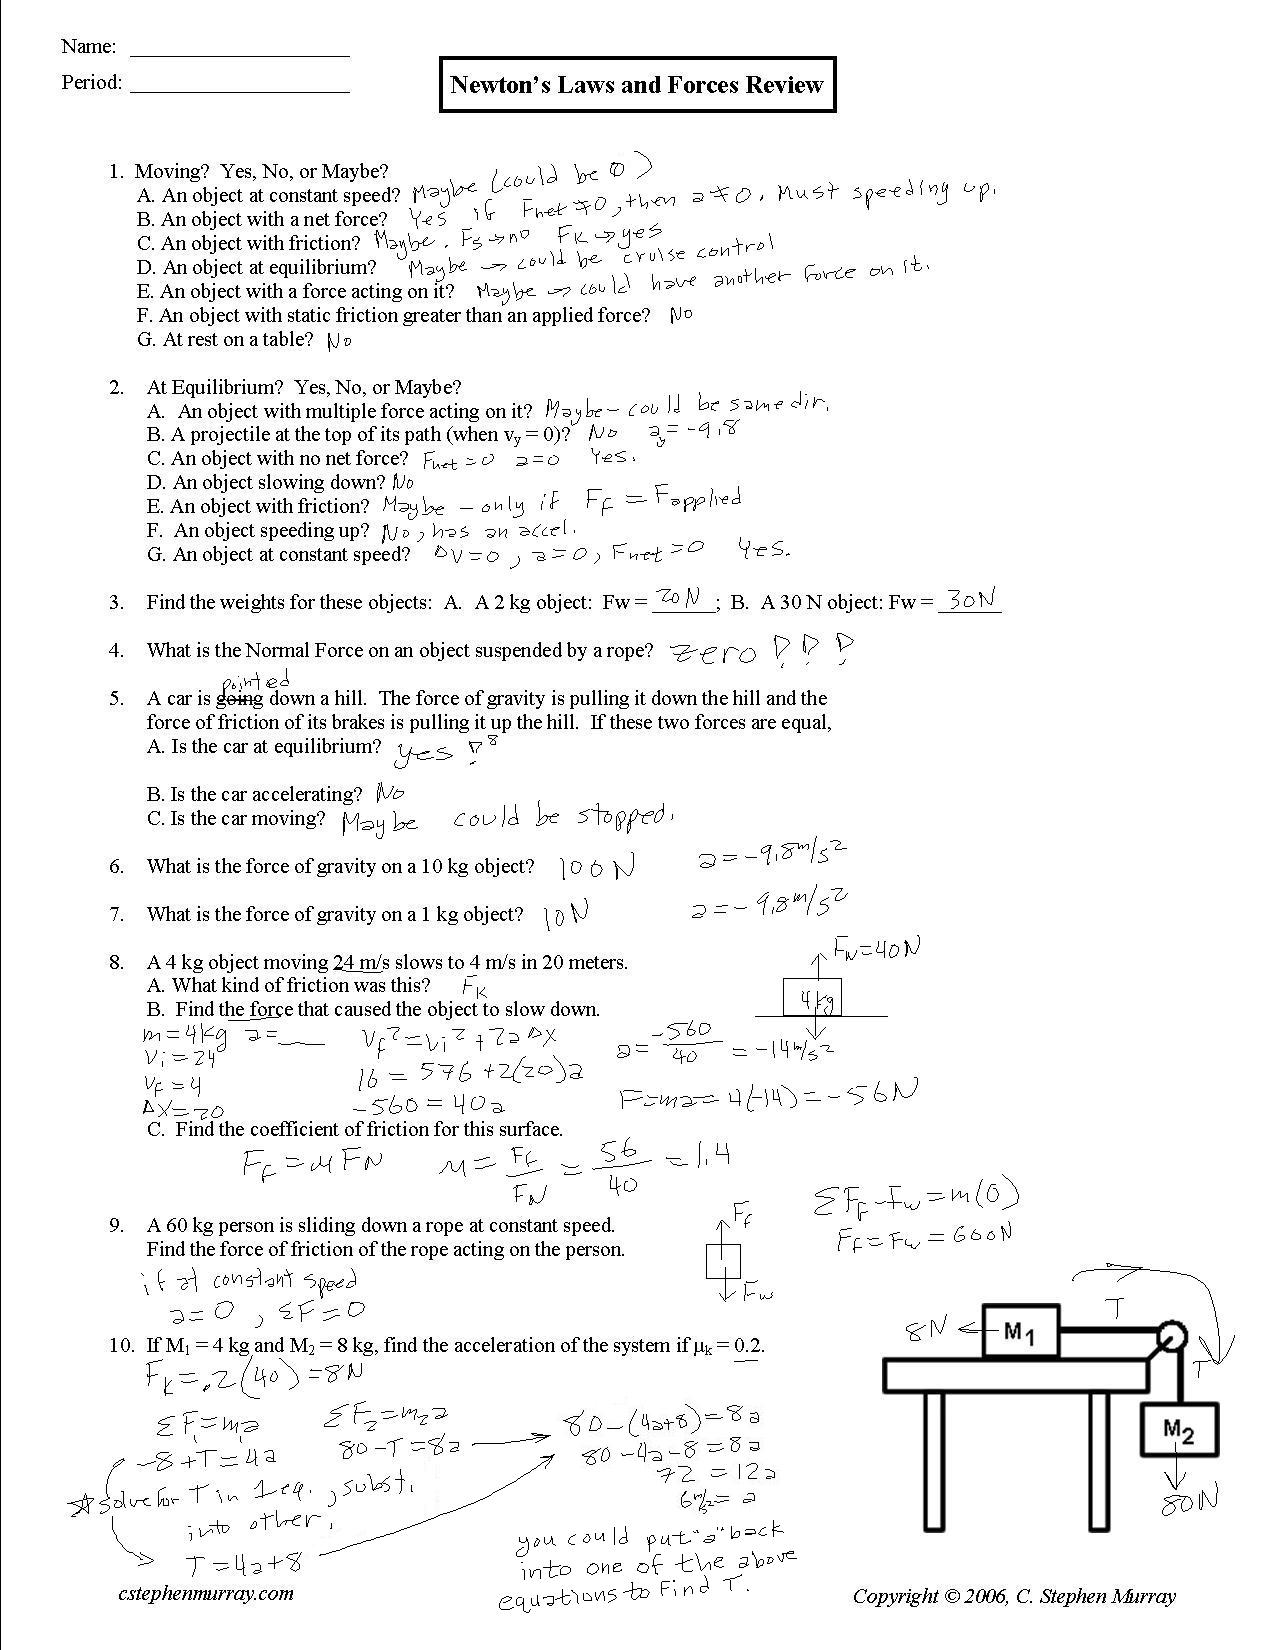 Newtons Laws Of Motion Review Sheet Coloring Pages